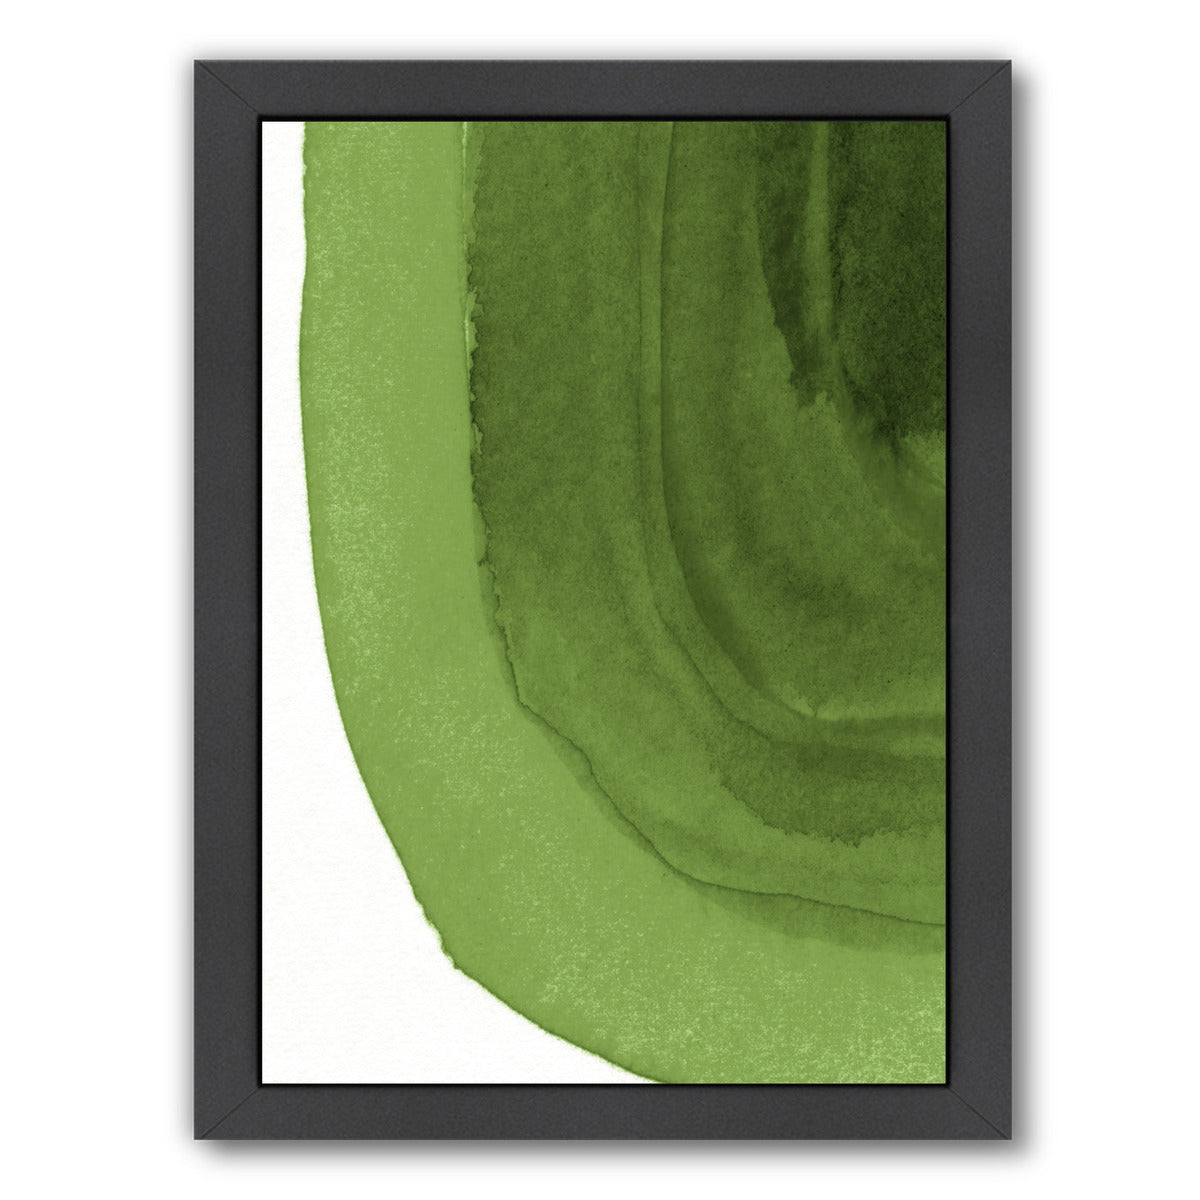 "Green Curves By Chaos & Wonder Design - Black Framed Print, Wall Art, Chaos & Wonder Design, 8"" x 10"""